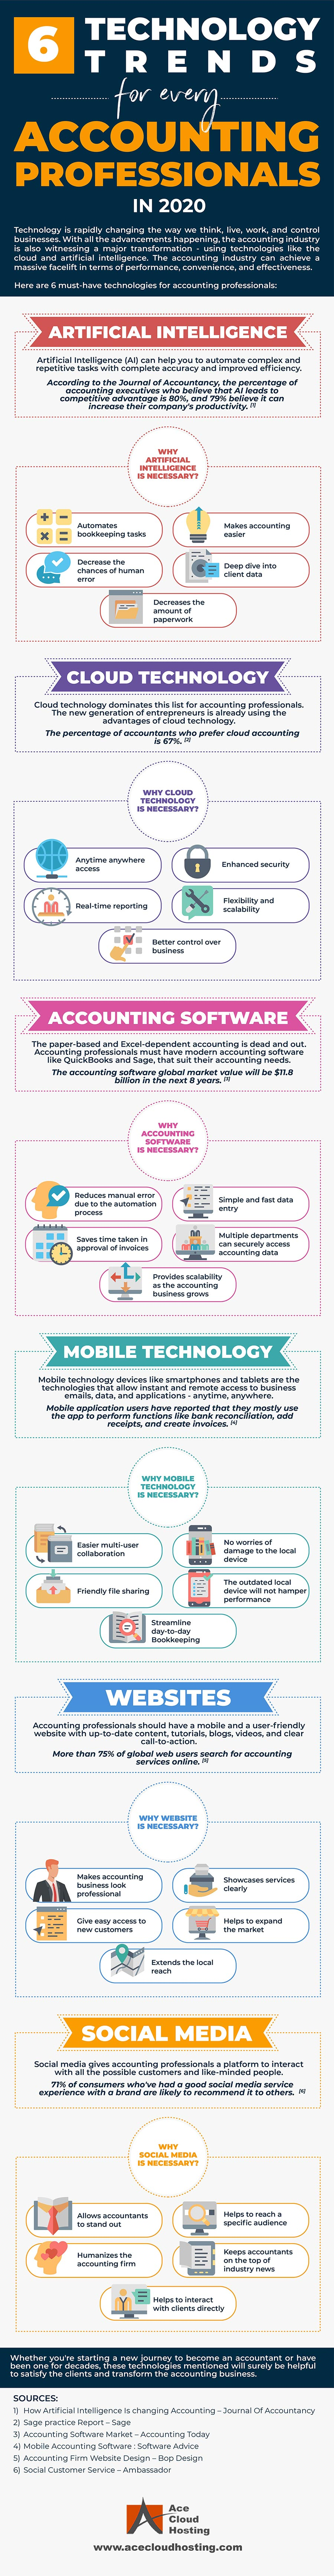 [Infographic] Must-Have Technologies For Today's Accounting Professional